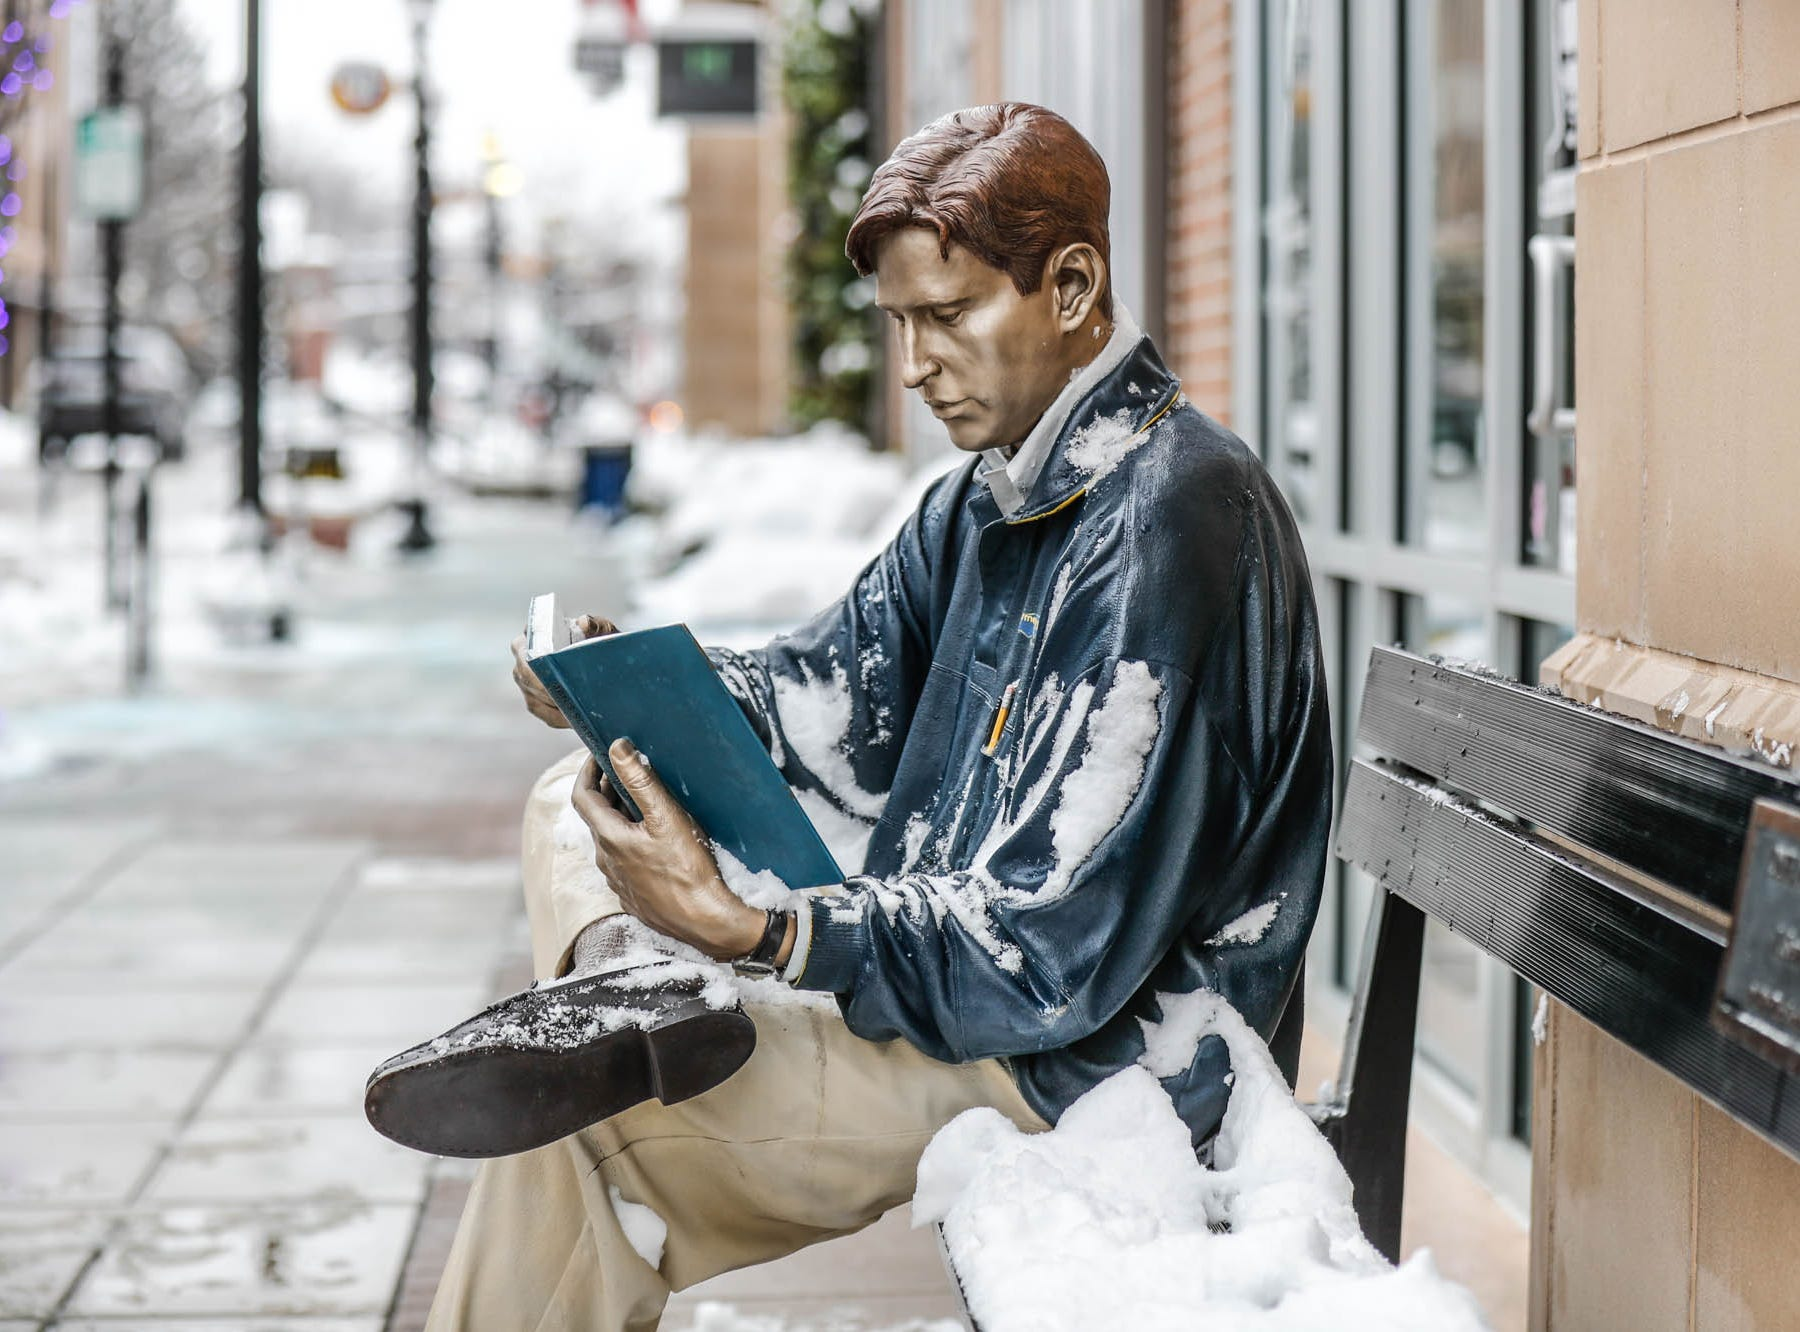 A sculpture by J. Seaward Johnson is dusted with snow in downtown Carmel Ind. on Sunday, Jan. 13, 2019.